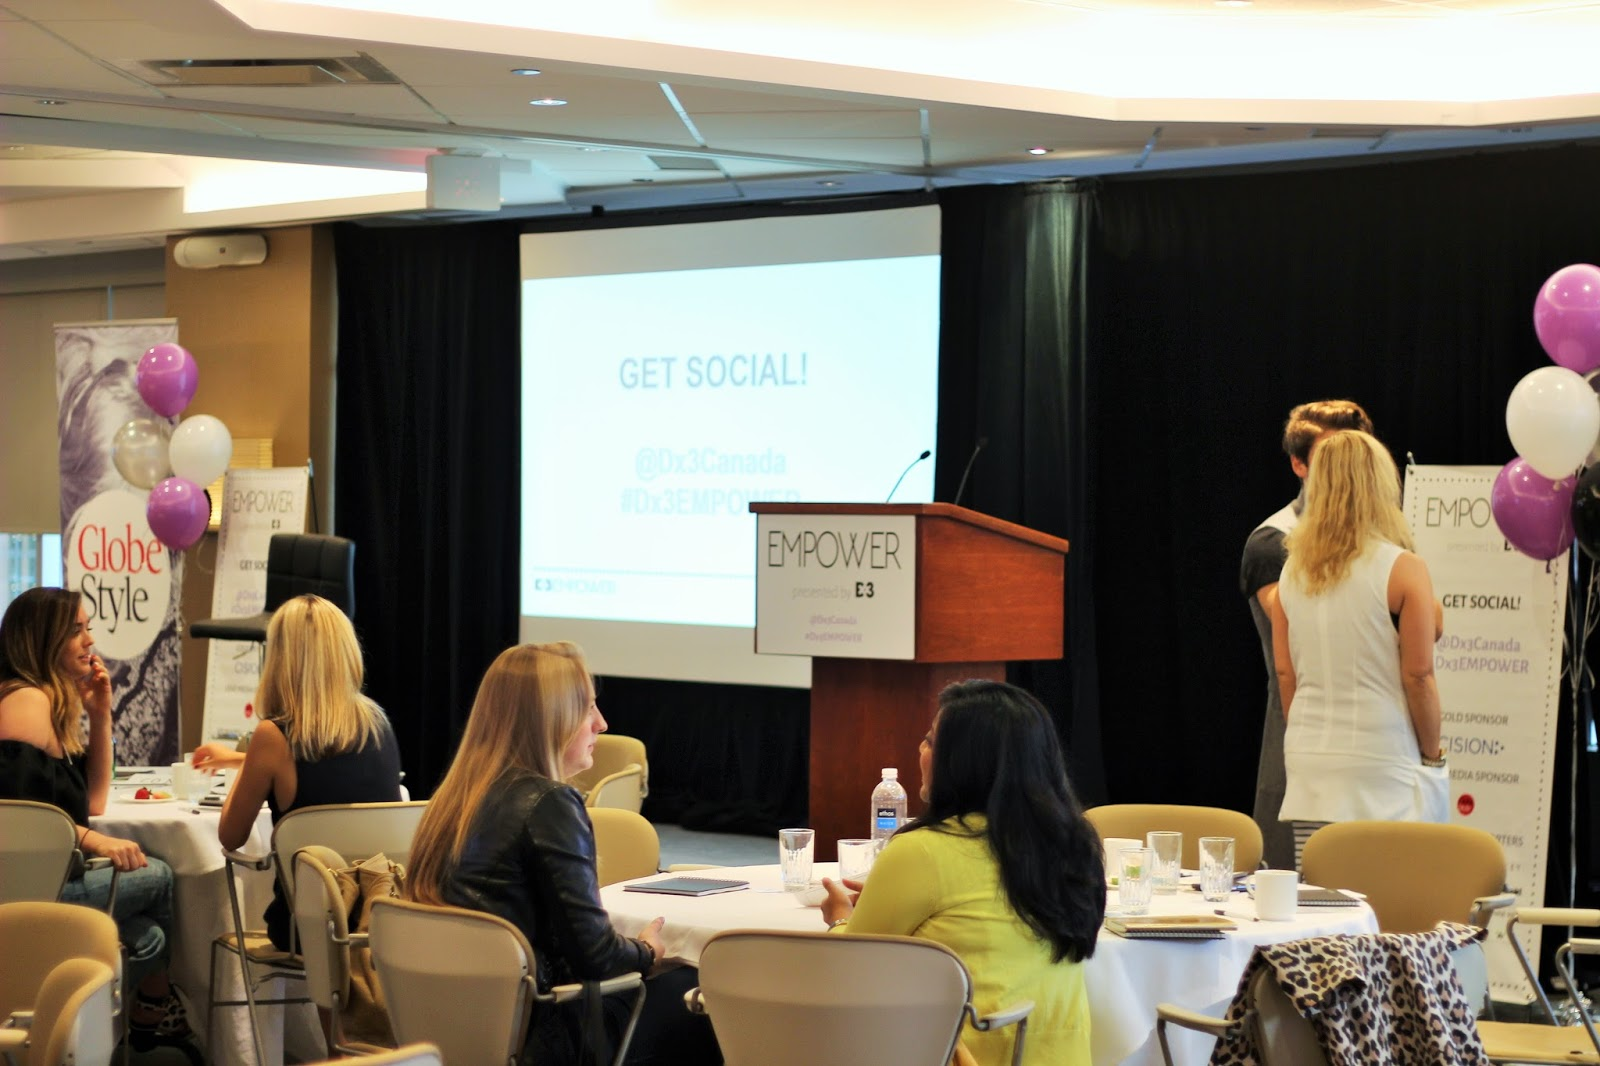 DX3 EMPOWER 2015 by DX3 Canada | THE INSIDE STORY: WHEN BLOGGERS/INFLUENCERS AND BRANDS MEET